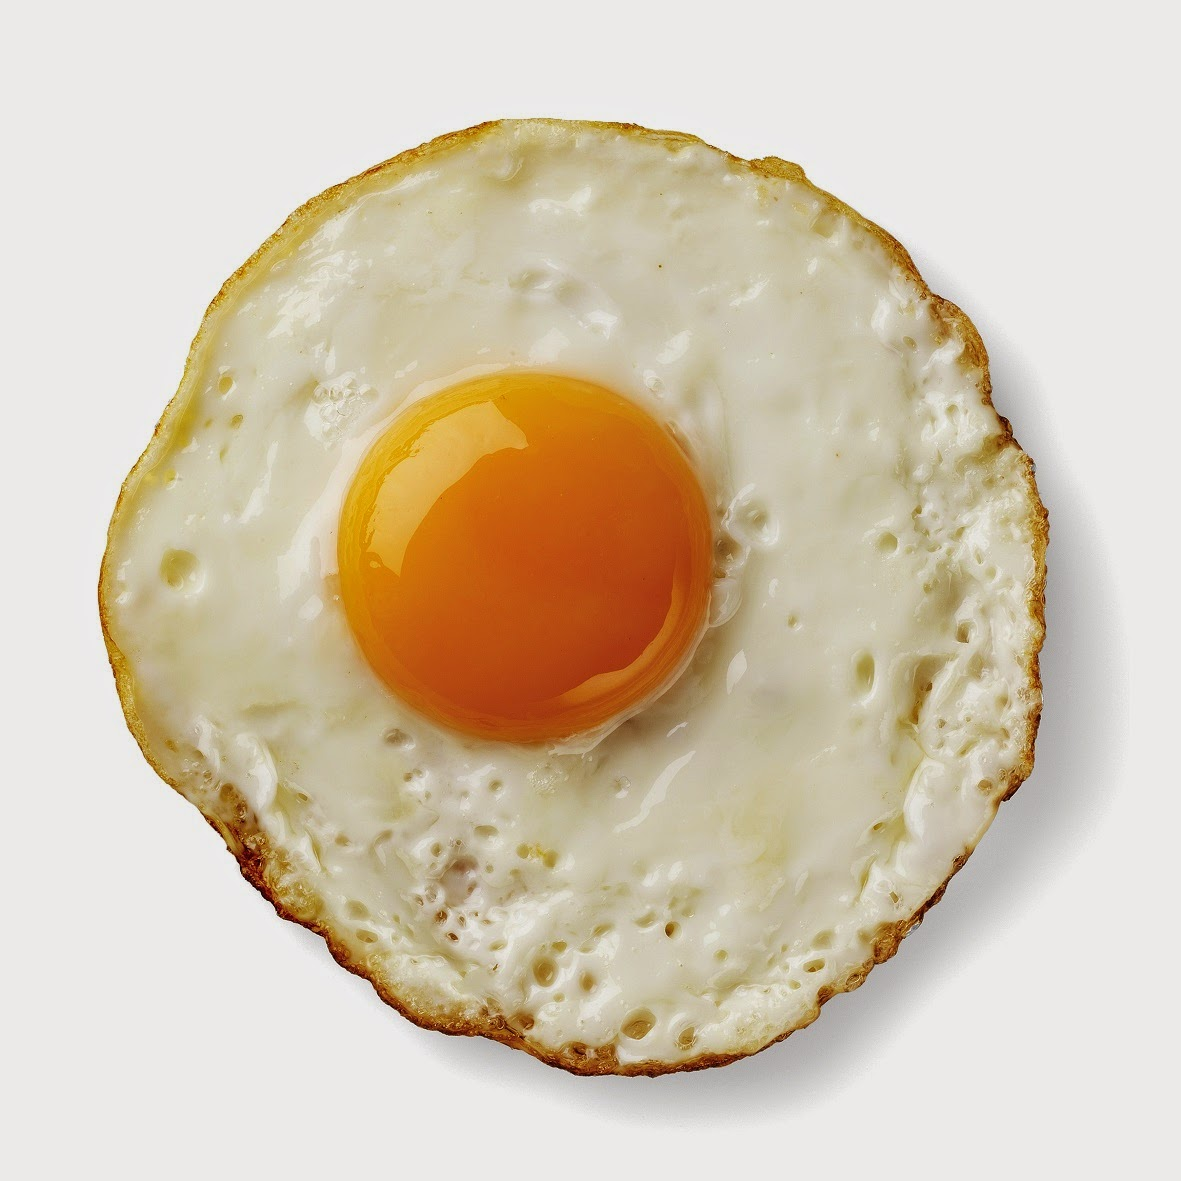 One Egg Image